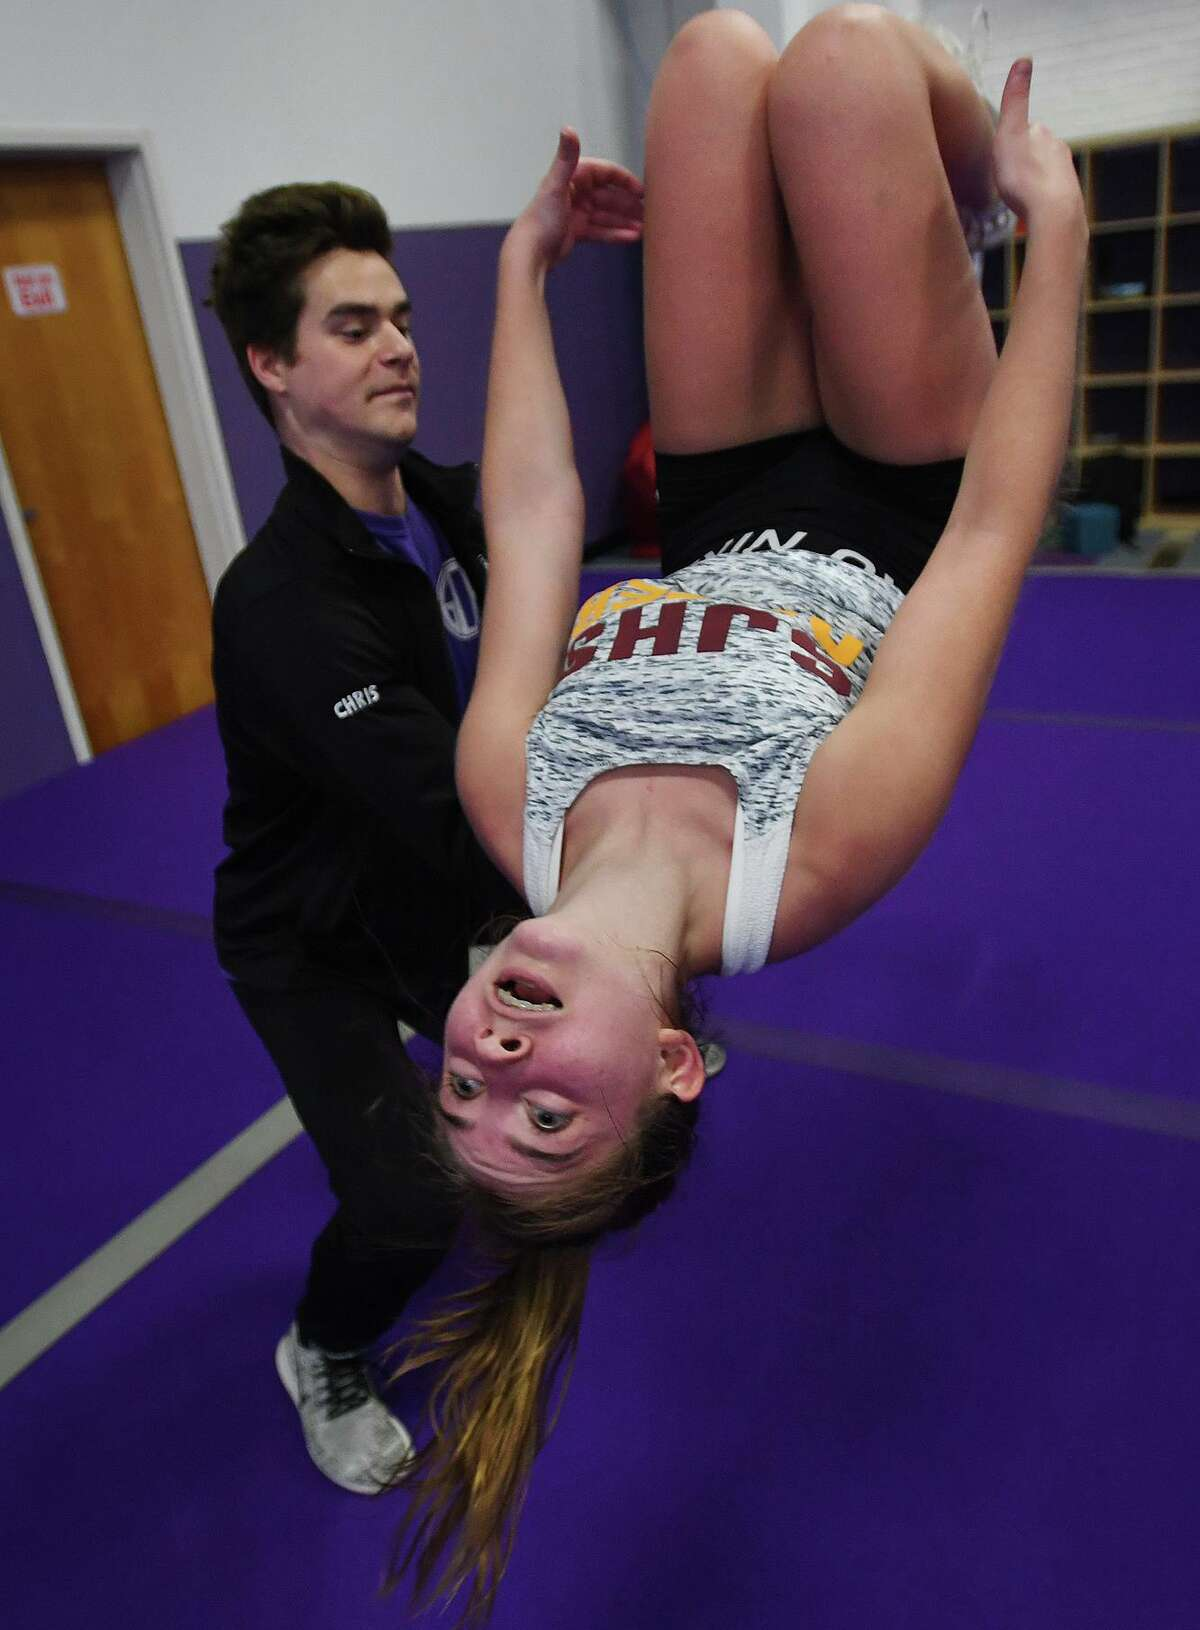 Hope Wenzel, 13, of Easton, practices back flips with the help of coach Chris Polley, of Norwalk, at the Gymnastics and Cheerleading Academy of CT in the SportsPlex complex at 85 Mill Plain Road in Fairfield, Conn. on Tuesday, September 17, 2019.